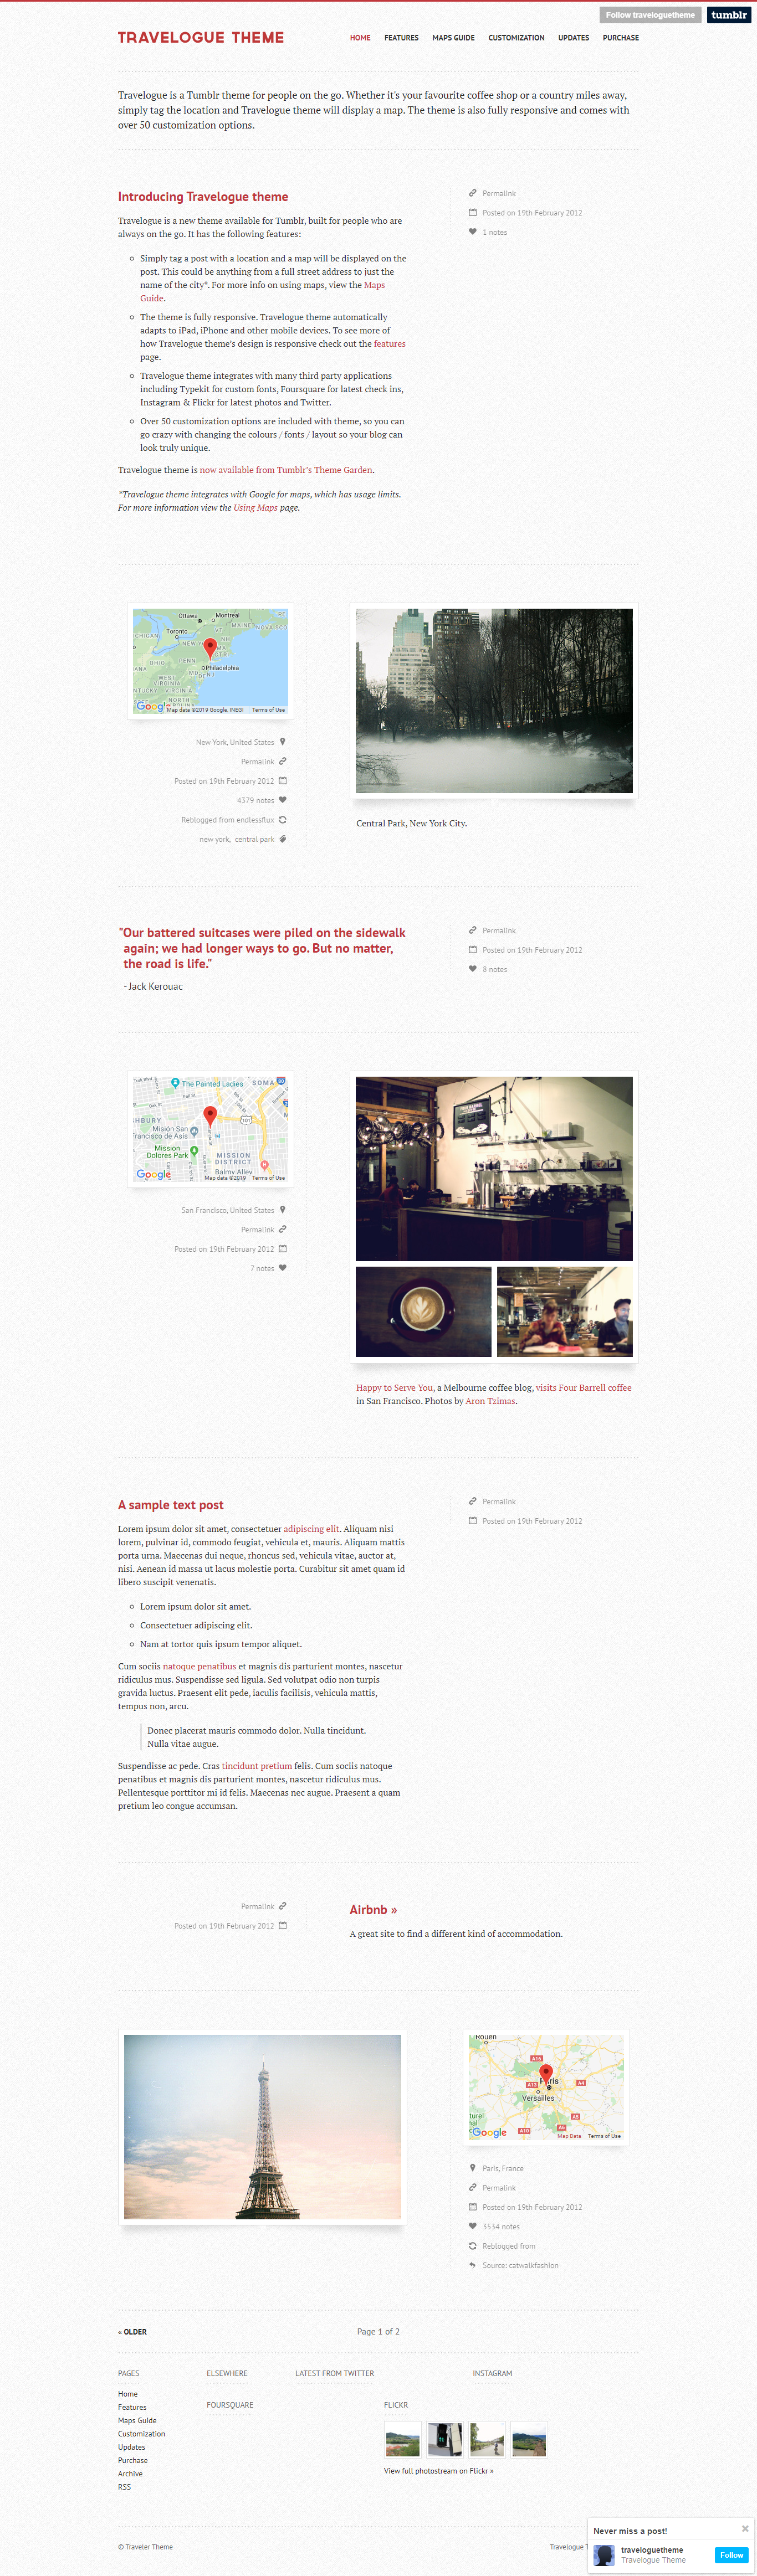 Travelogue - An Ultimate Traveler's Tumblr Theme